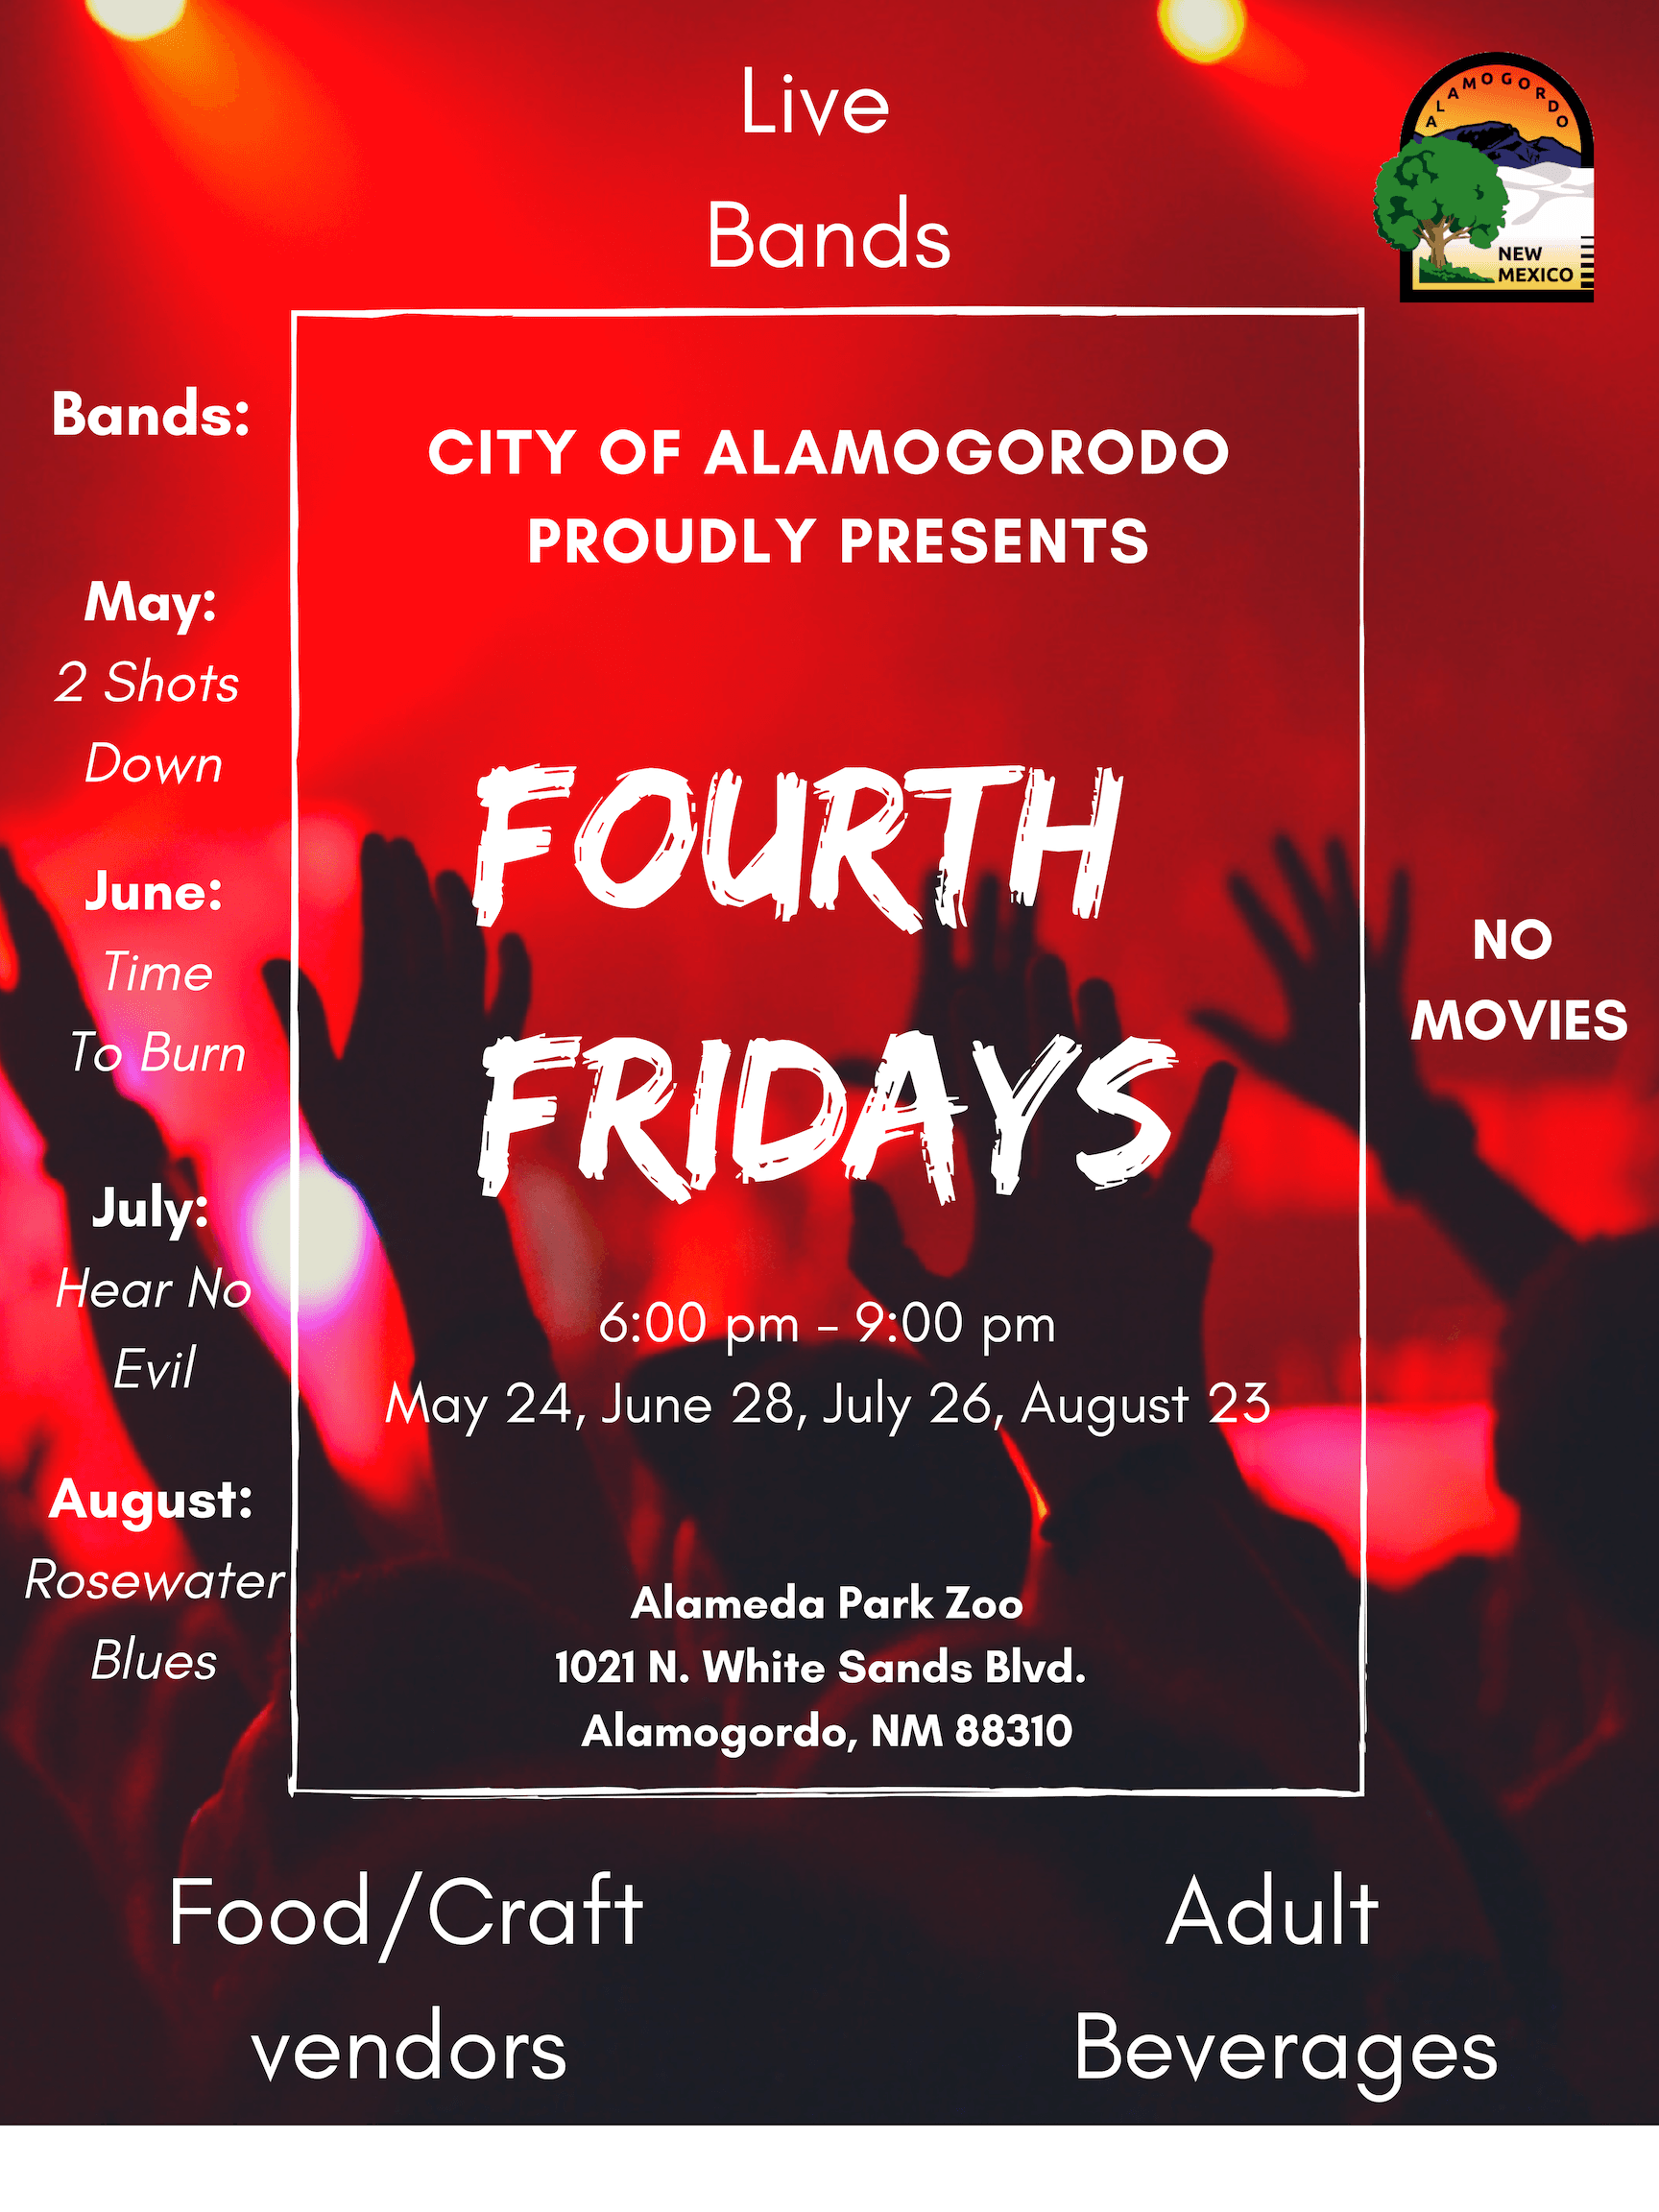 Fourth Fridays schedule for 2019